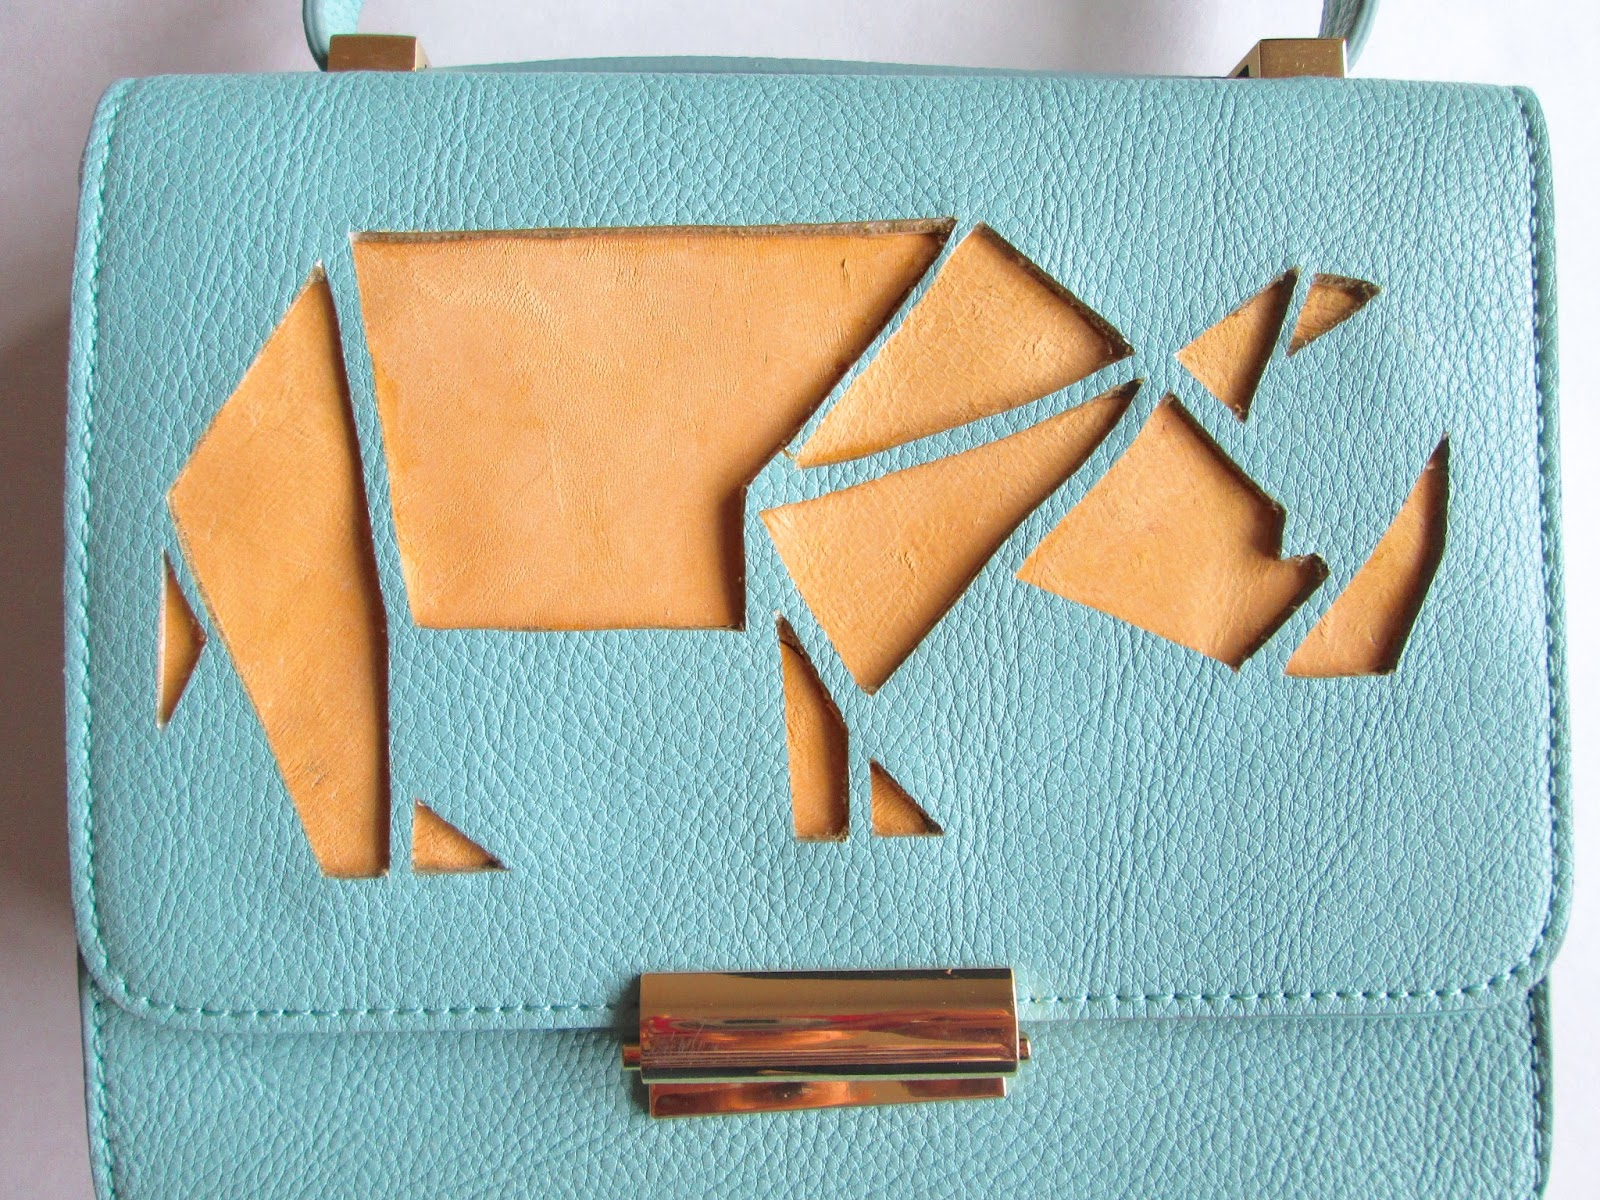 Anthropologie Rhino purse Knock-off